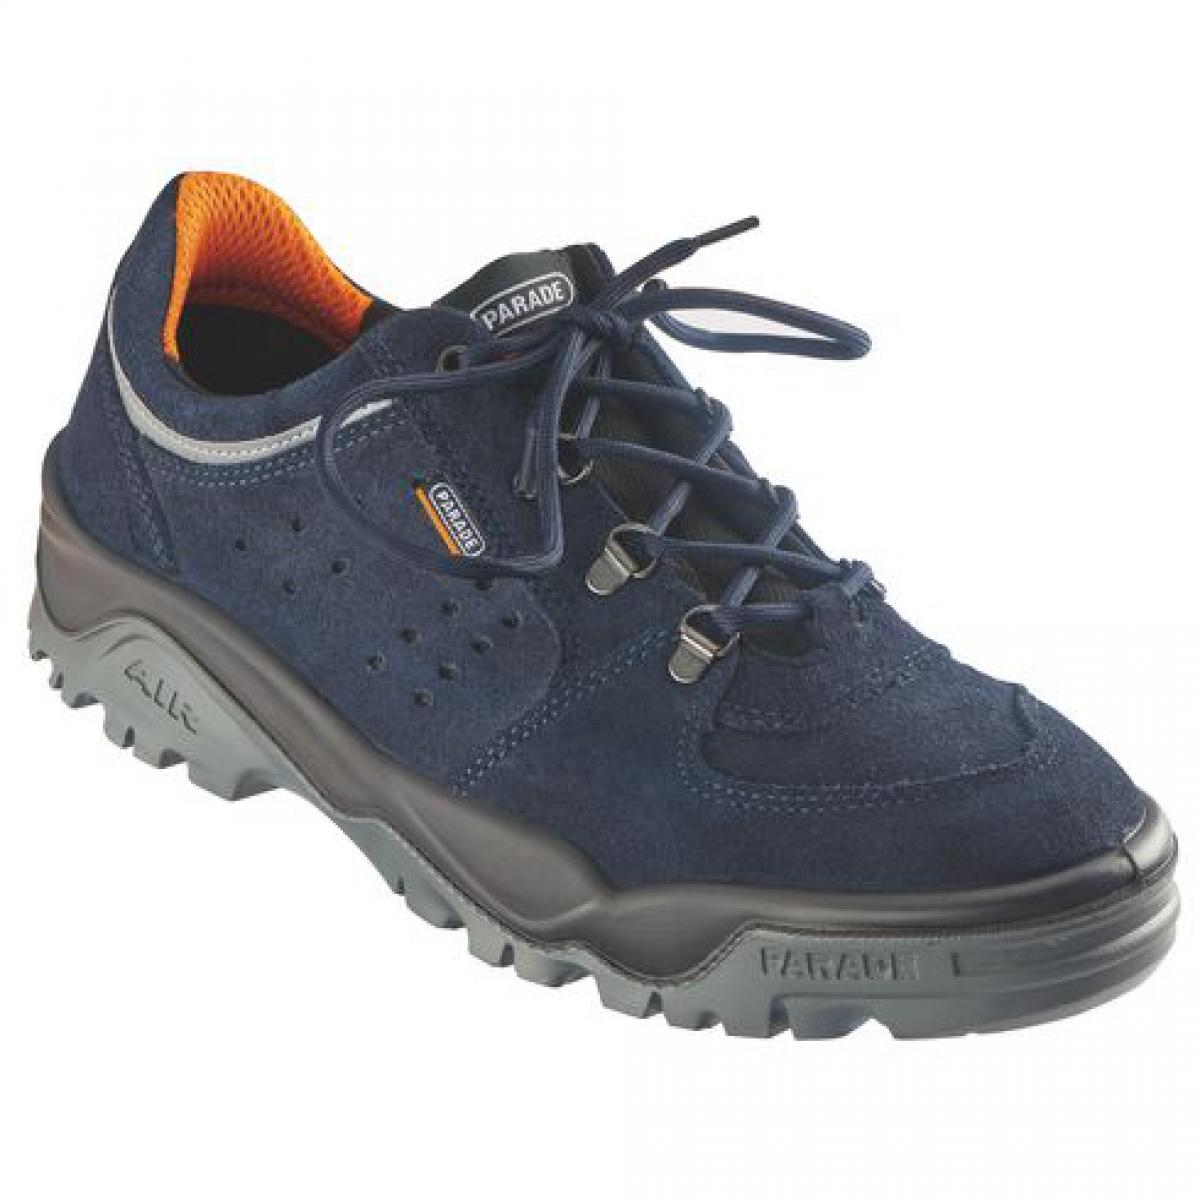 Parade Chaussure Doxo taille 40